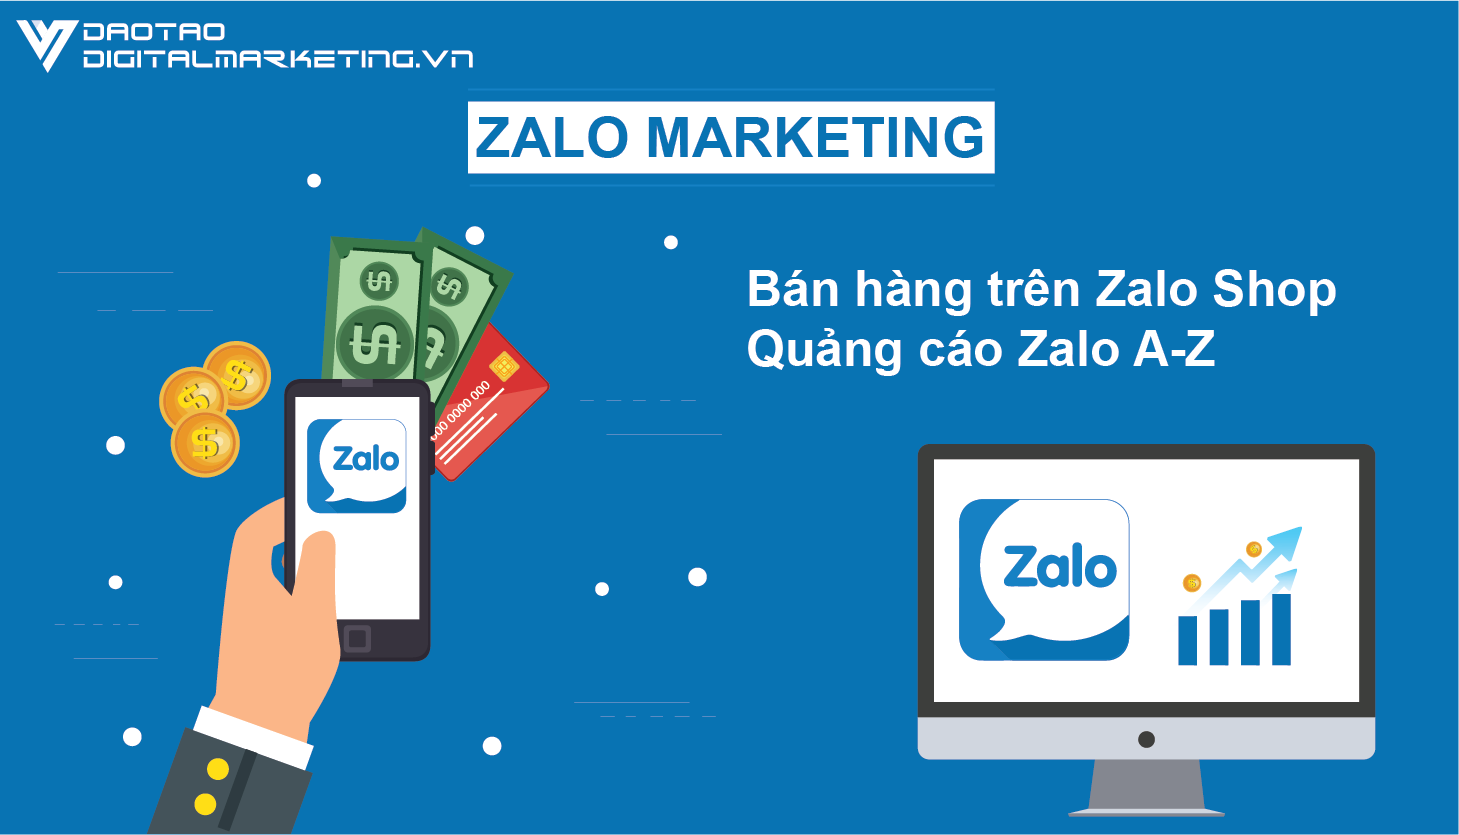 khoa-hoc-zalo-marketing-dao-tao-digital-marketing